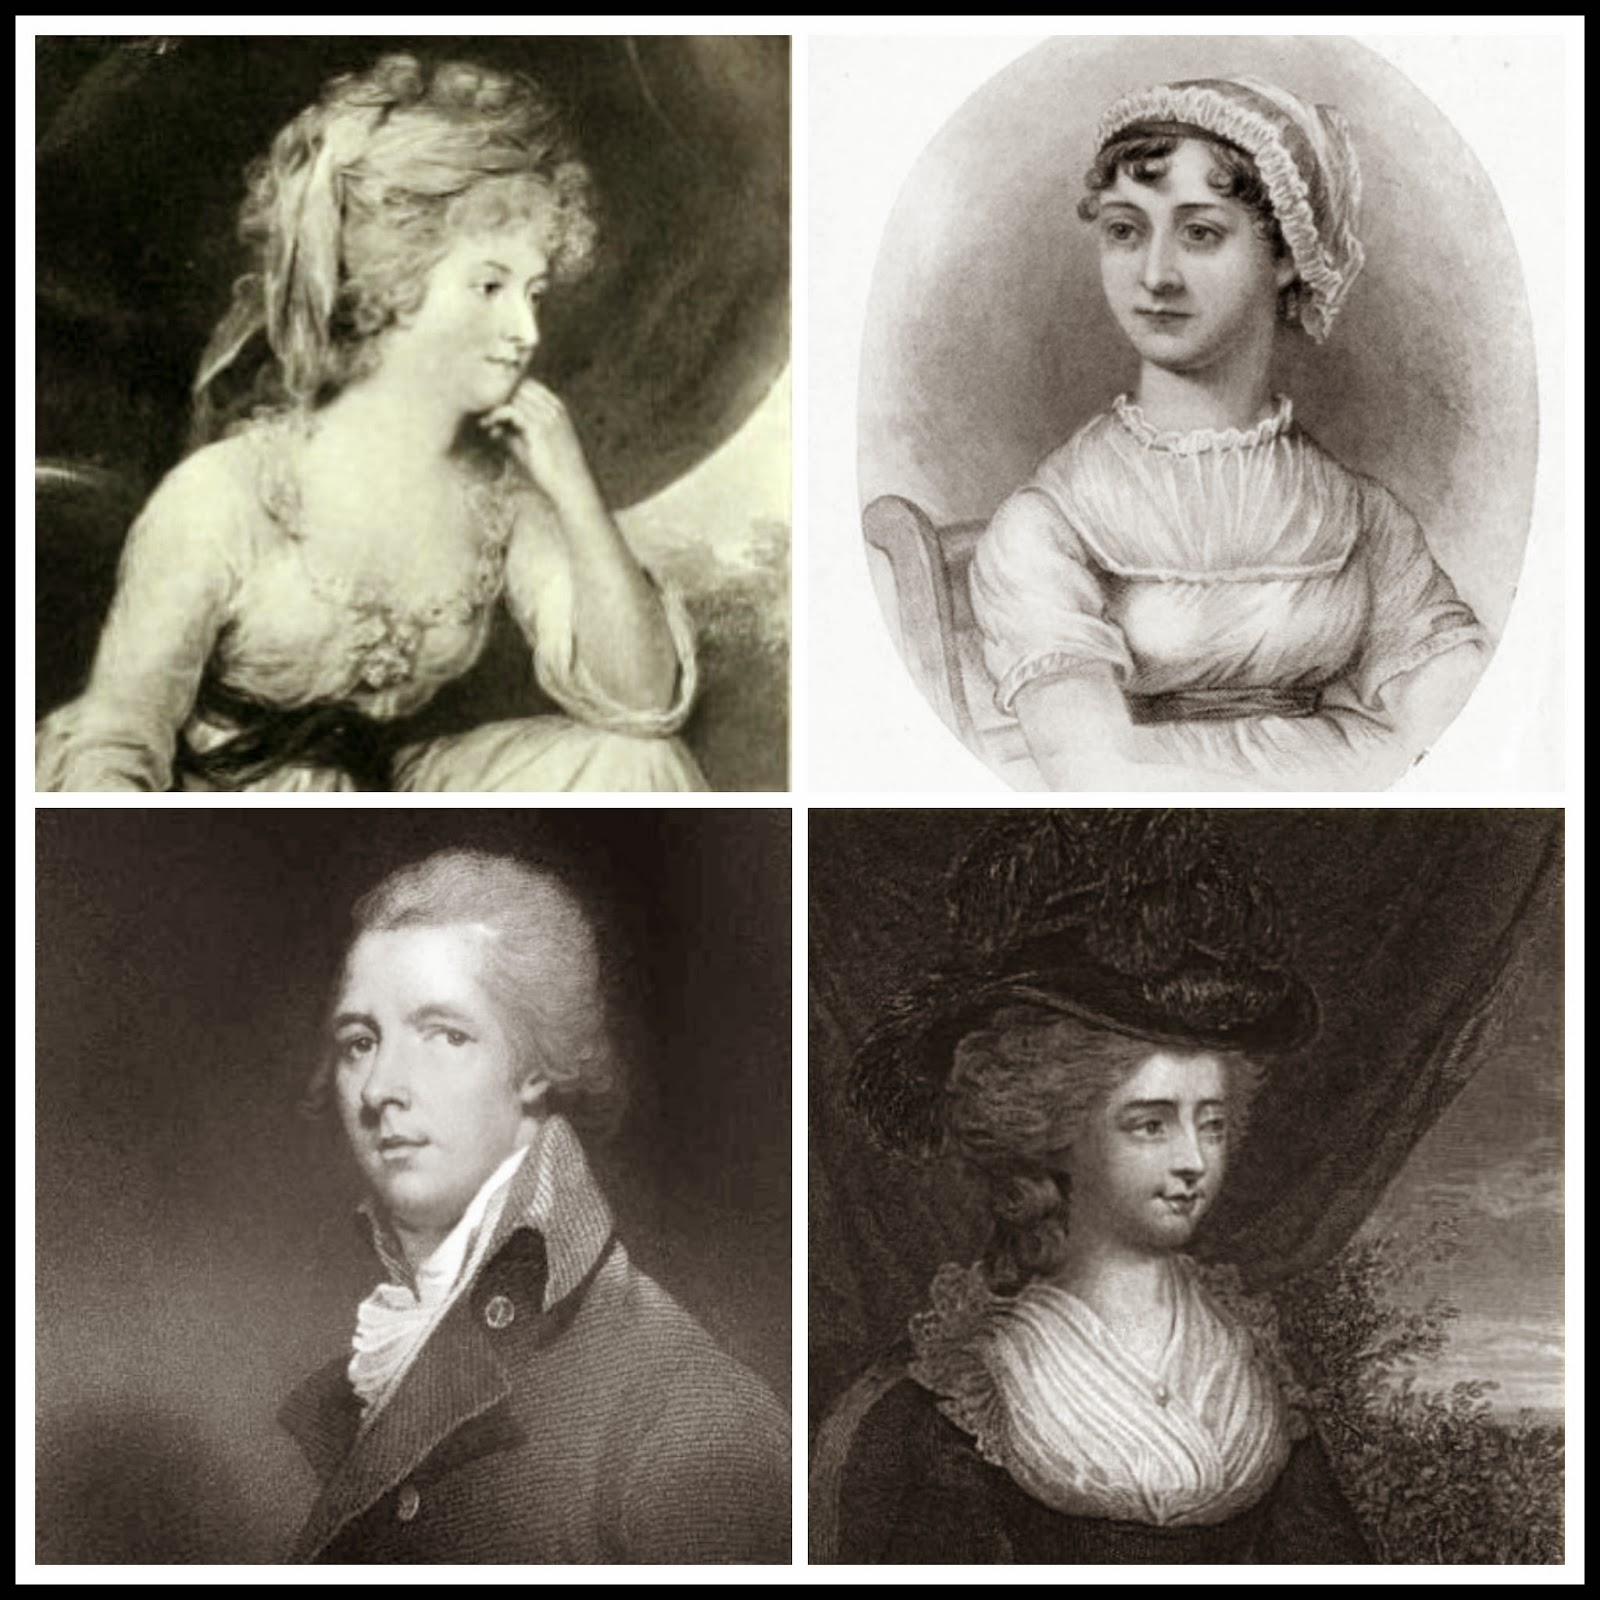 Mrs Fitzherbert from The Creevey Papers (1904); Jane Austen from A Memoir of Jane Austen by JE Austen Leigh (1871)  William Pitt from Memoirs of George IV by R Huish (1830)  Fanny Burney from Diary and letters of Madame D'Arblay (1846)